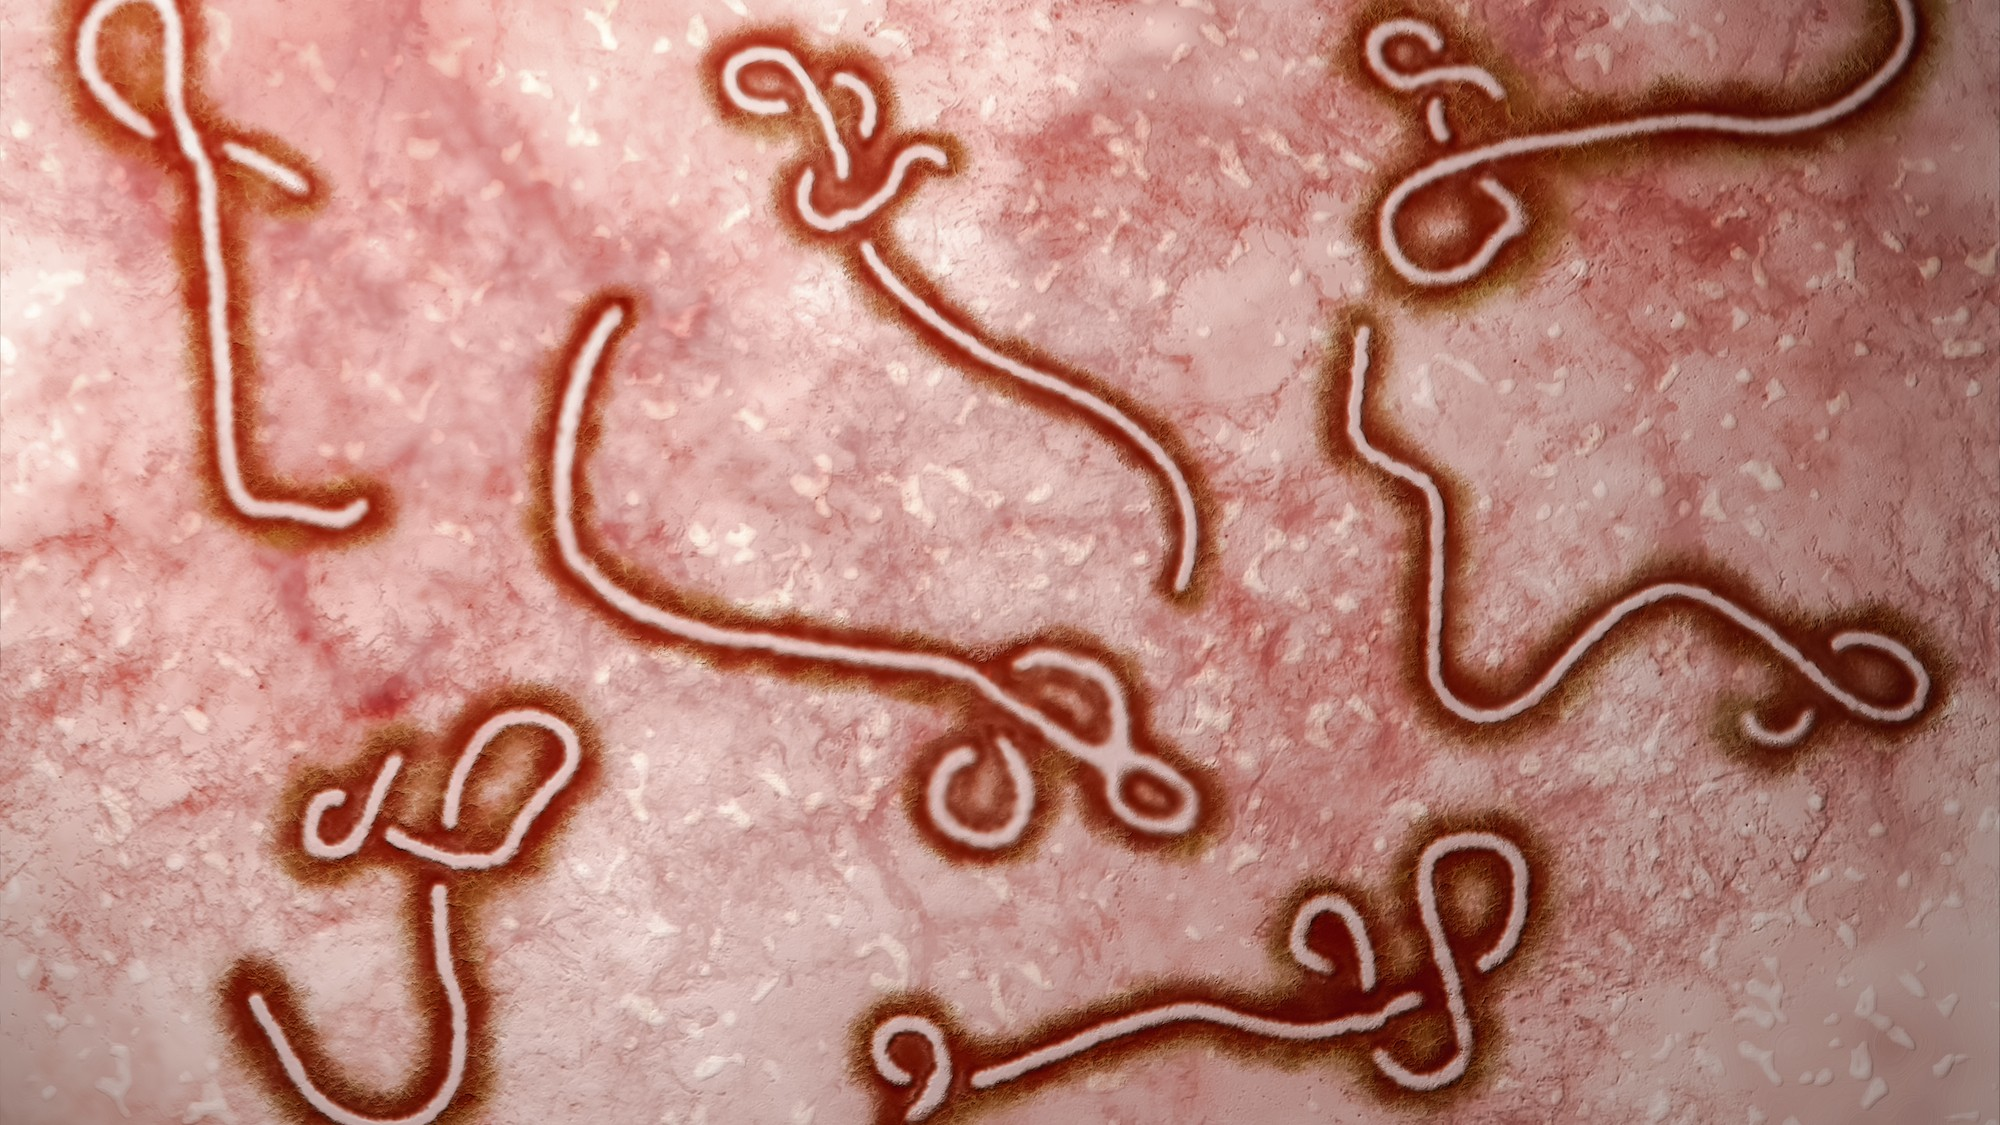 An Ebola Vaccine Is Showing Up to 100 Percent Efficacy So Far